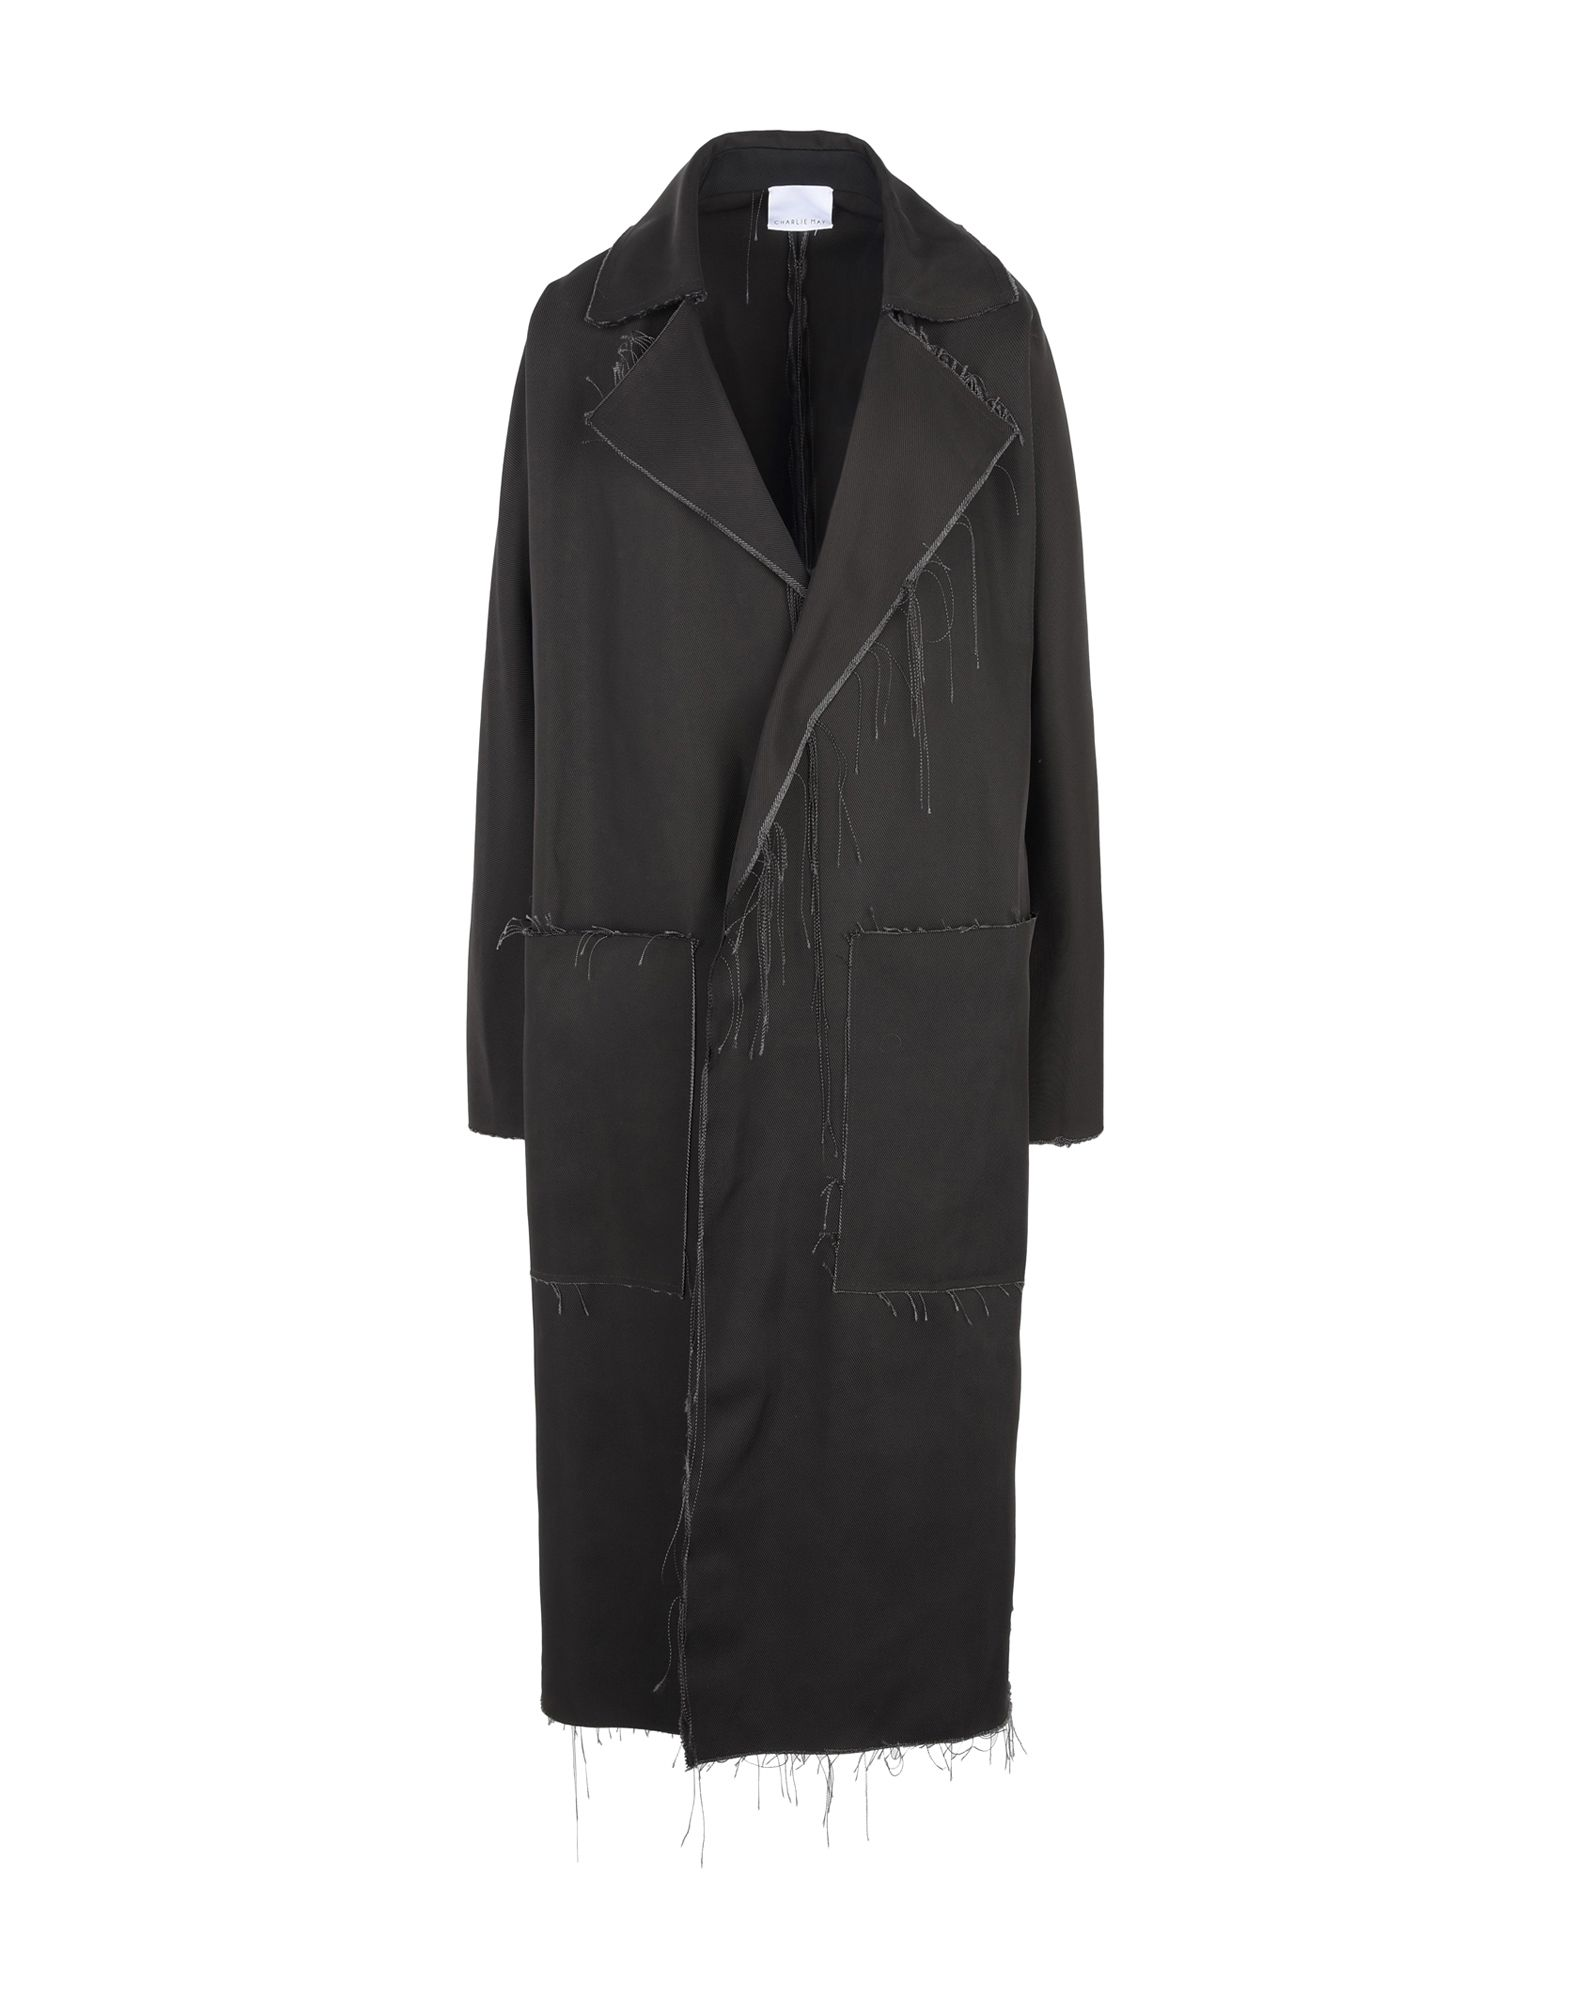 CHARLIE MAY Full-Length Jacket in Black